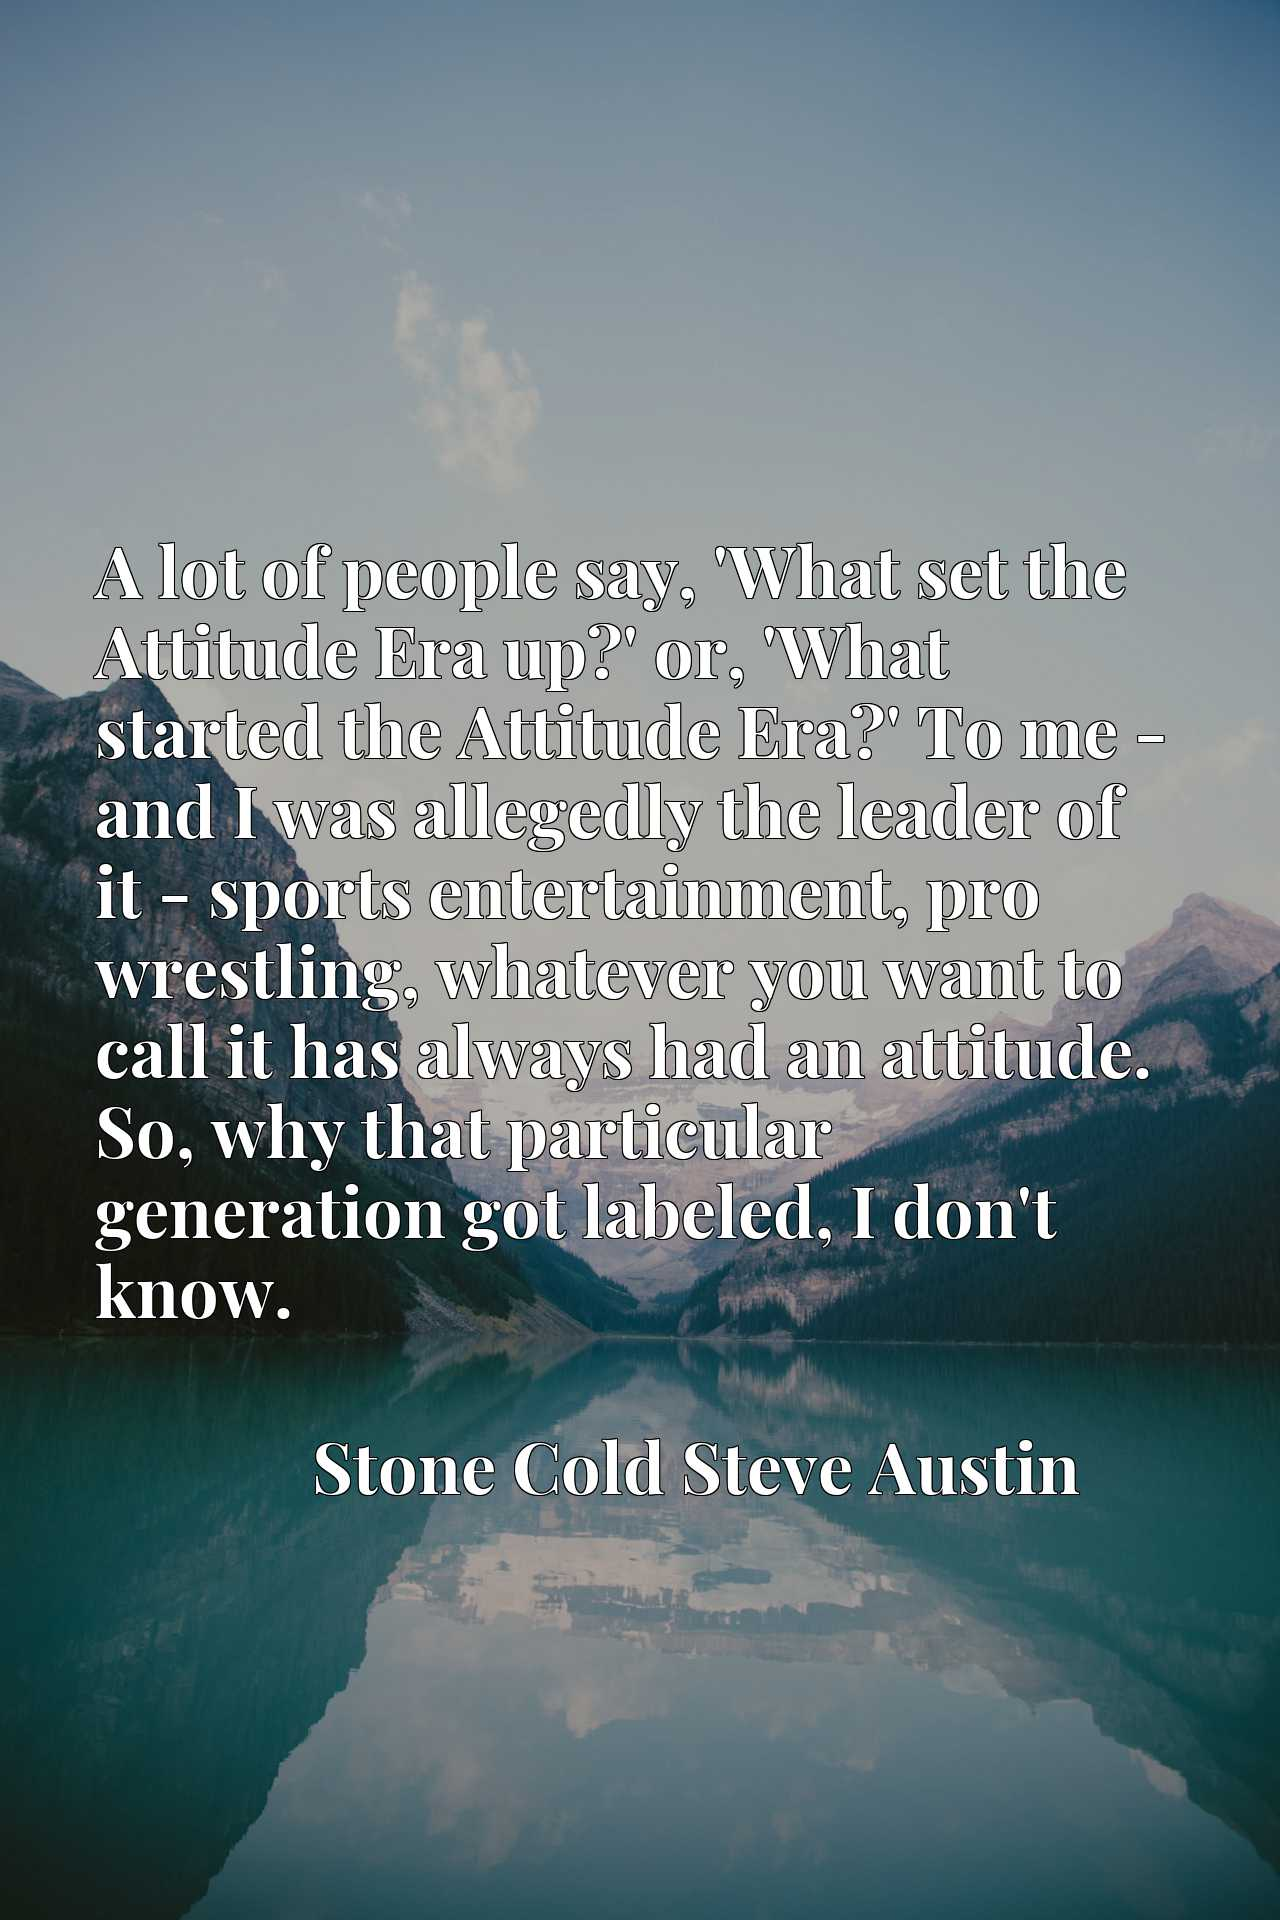 A lot of people say, 'What set the Attitude Era up?' or, 'What started the Attitude Era?' To me - and I was allegedly the leader of it - sports entertainment, pro wrestling, whatever you want to call it has always had an attitude. So, why that particular generation got labeled, I don't know.